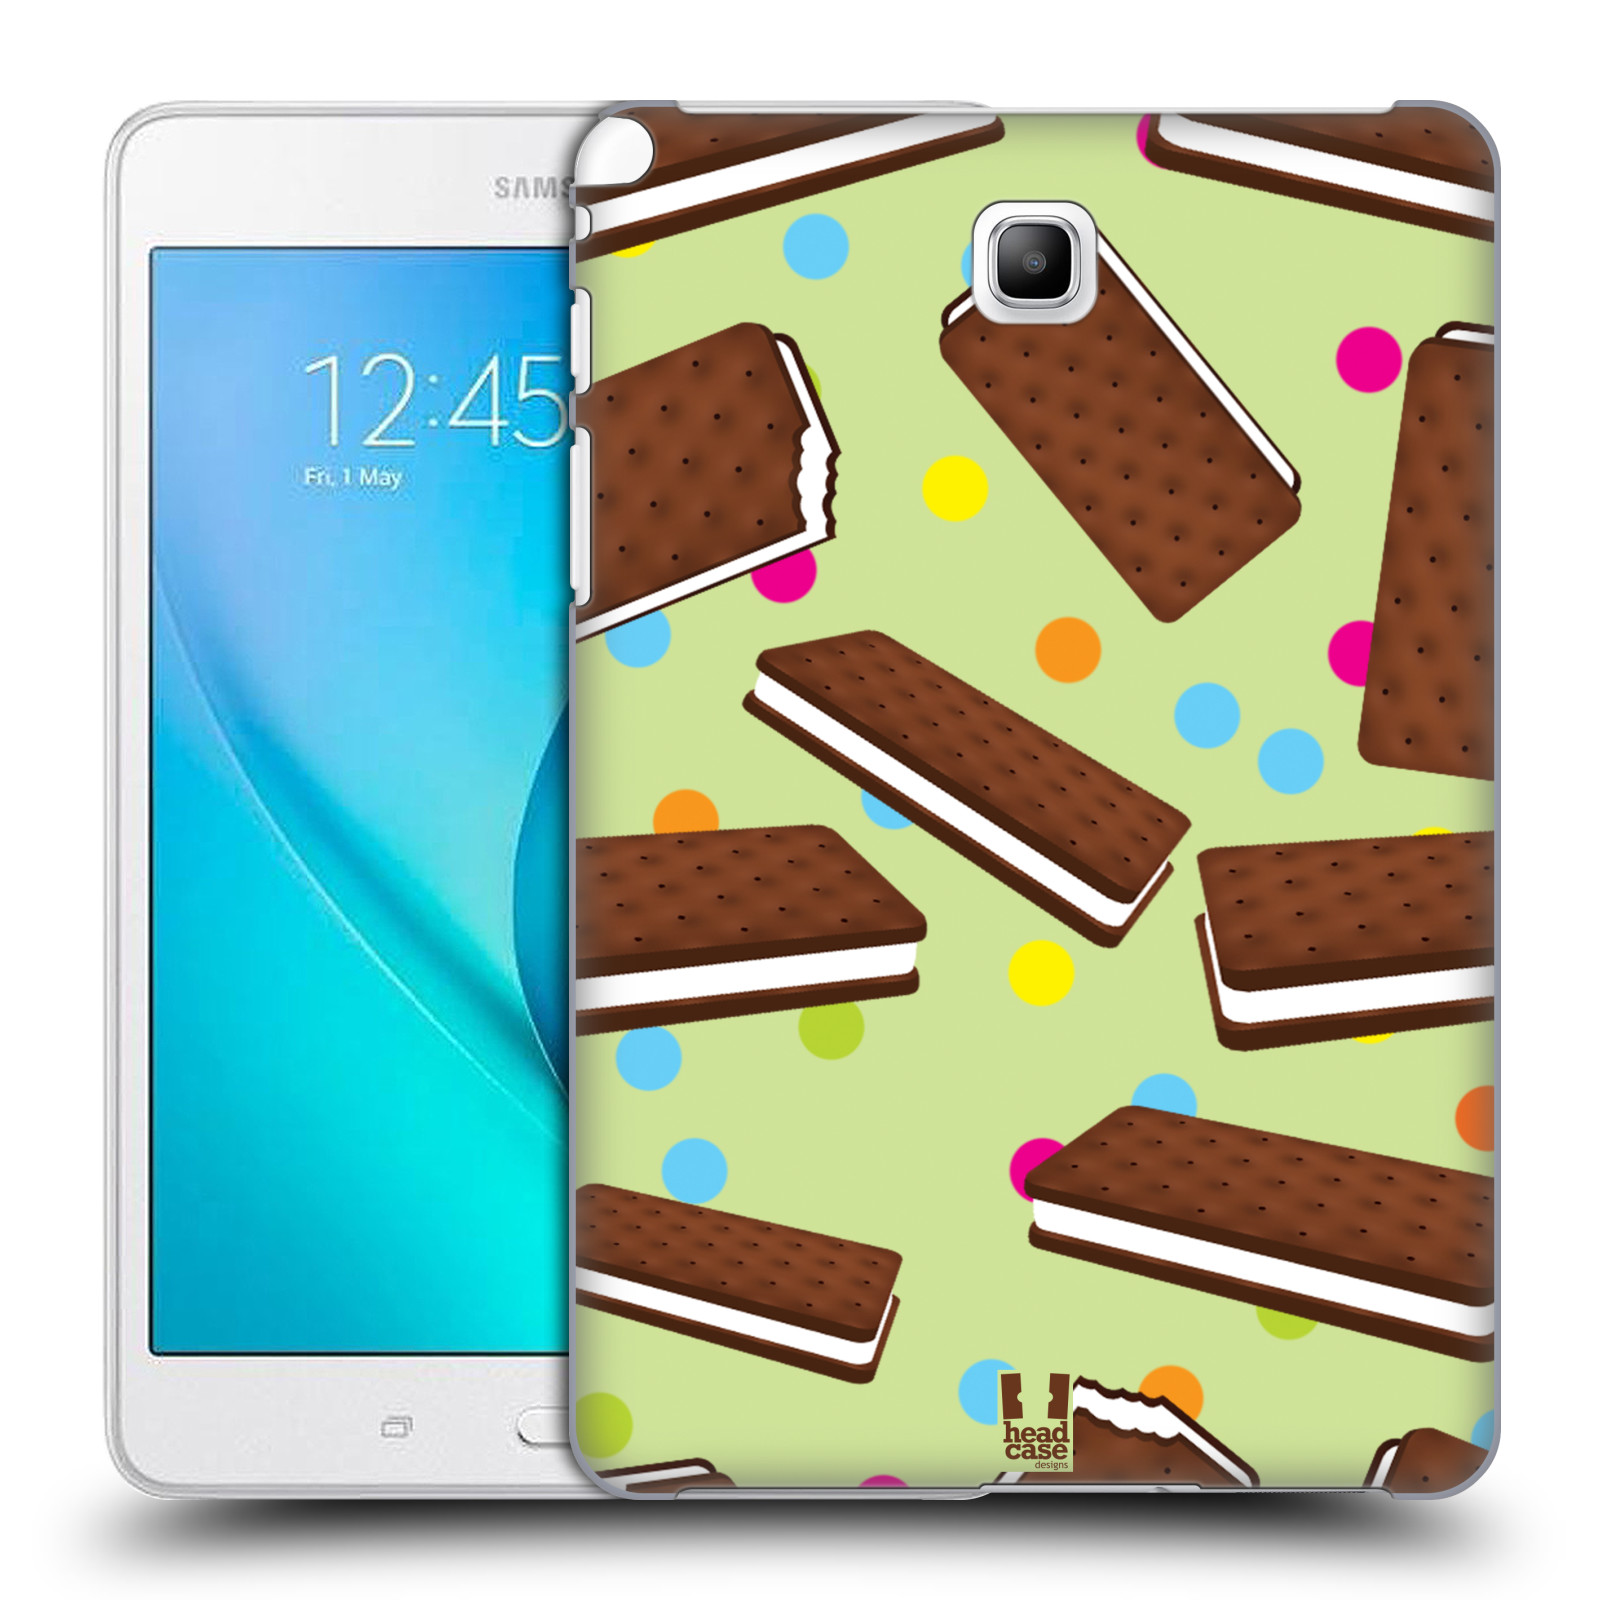 HEAD CASE DESIGNS ICE CREAM BARS HARD BACK CASE FOR SAMSUNG TABLETS 1.